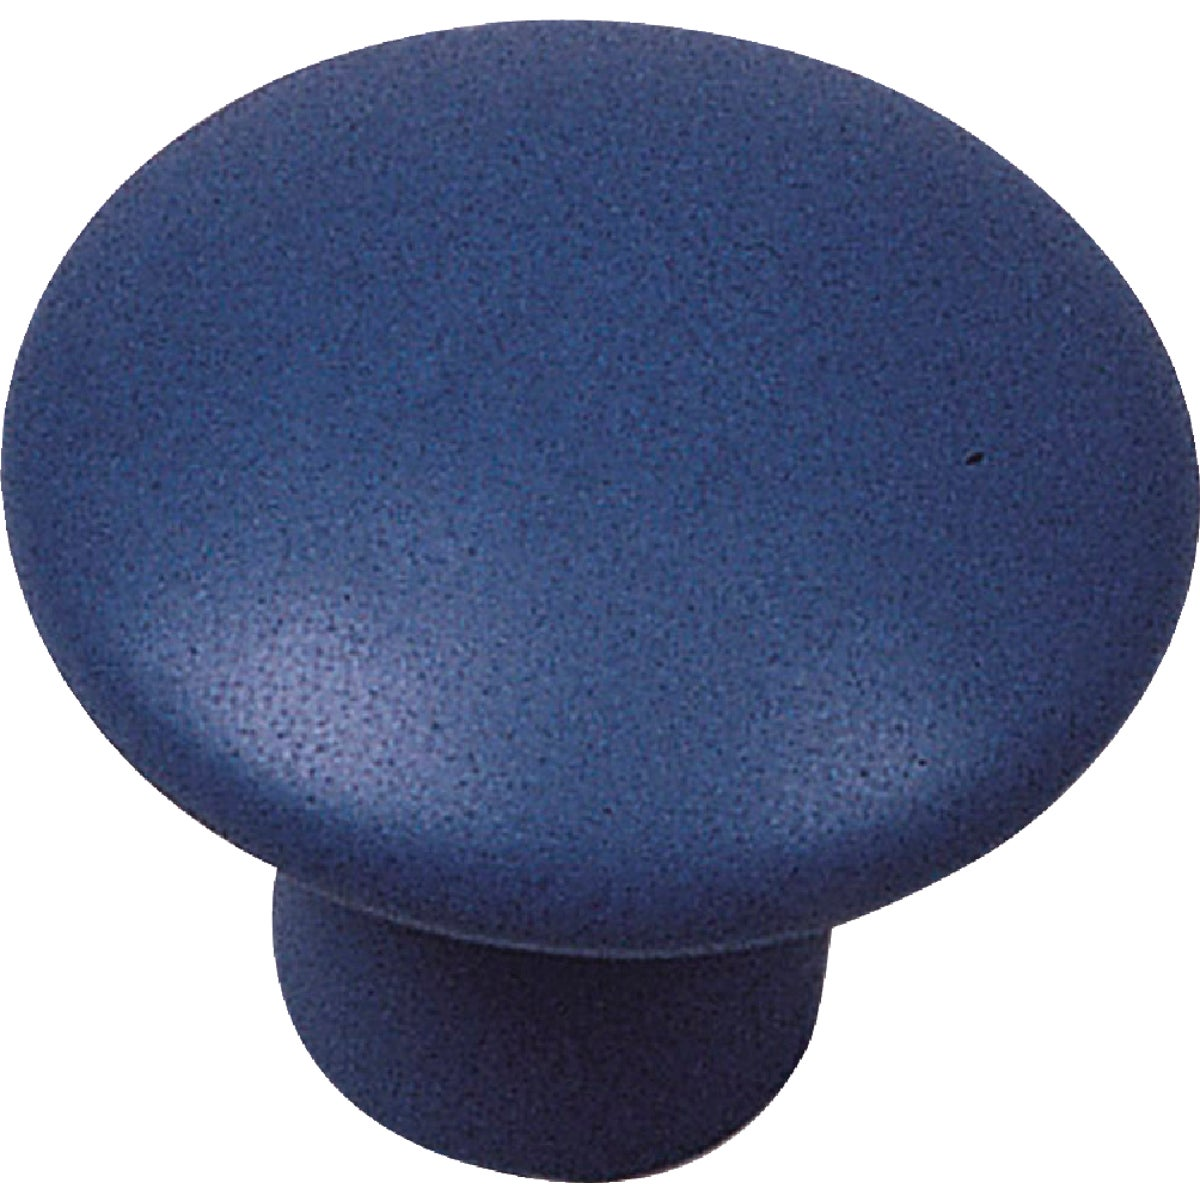 1-3/8 SLATE CERAMIC KNOB - 03980 by Laurey Co